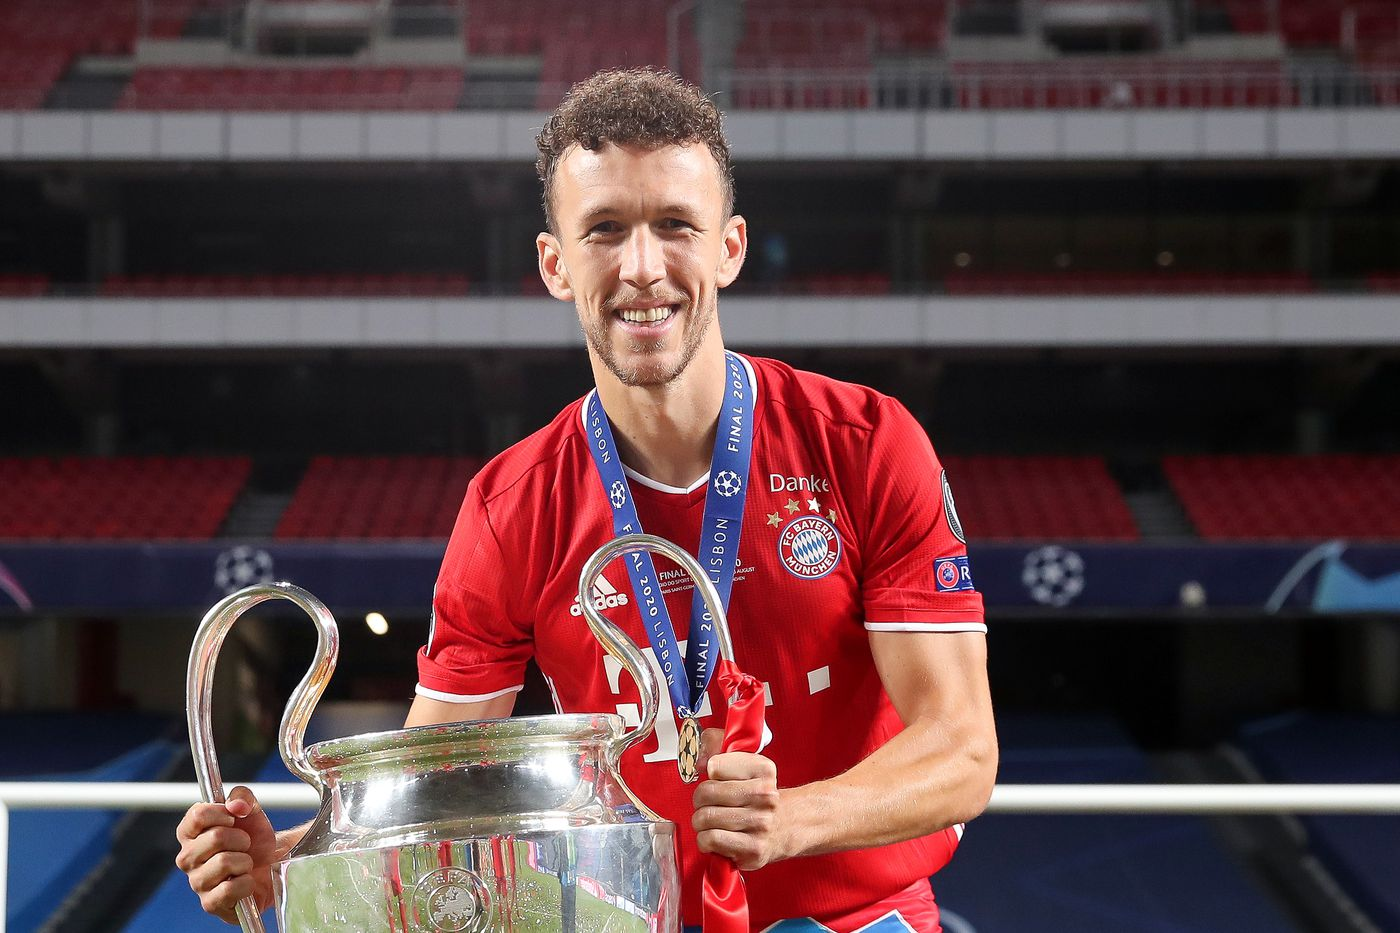 Daily Schmankerl: Ivan Perisic is up for sale, is Bayern Munich interested?; Liverpool also wants Robert Lewandowski; Chelsea, Manchester City, Manchester United eyeing Tottenham Hotspur star Harry Kane; and MORE! - Bavarian